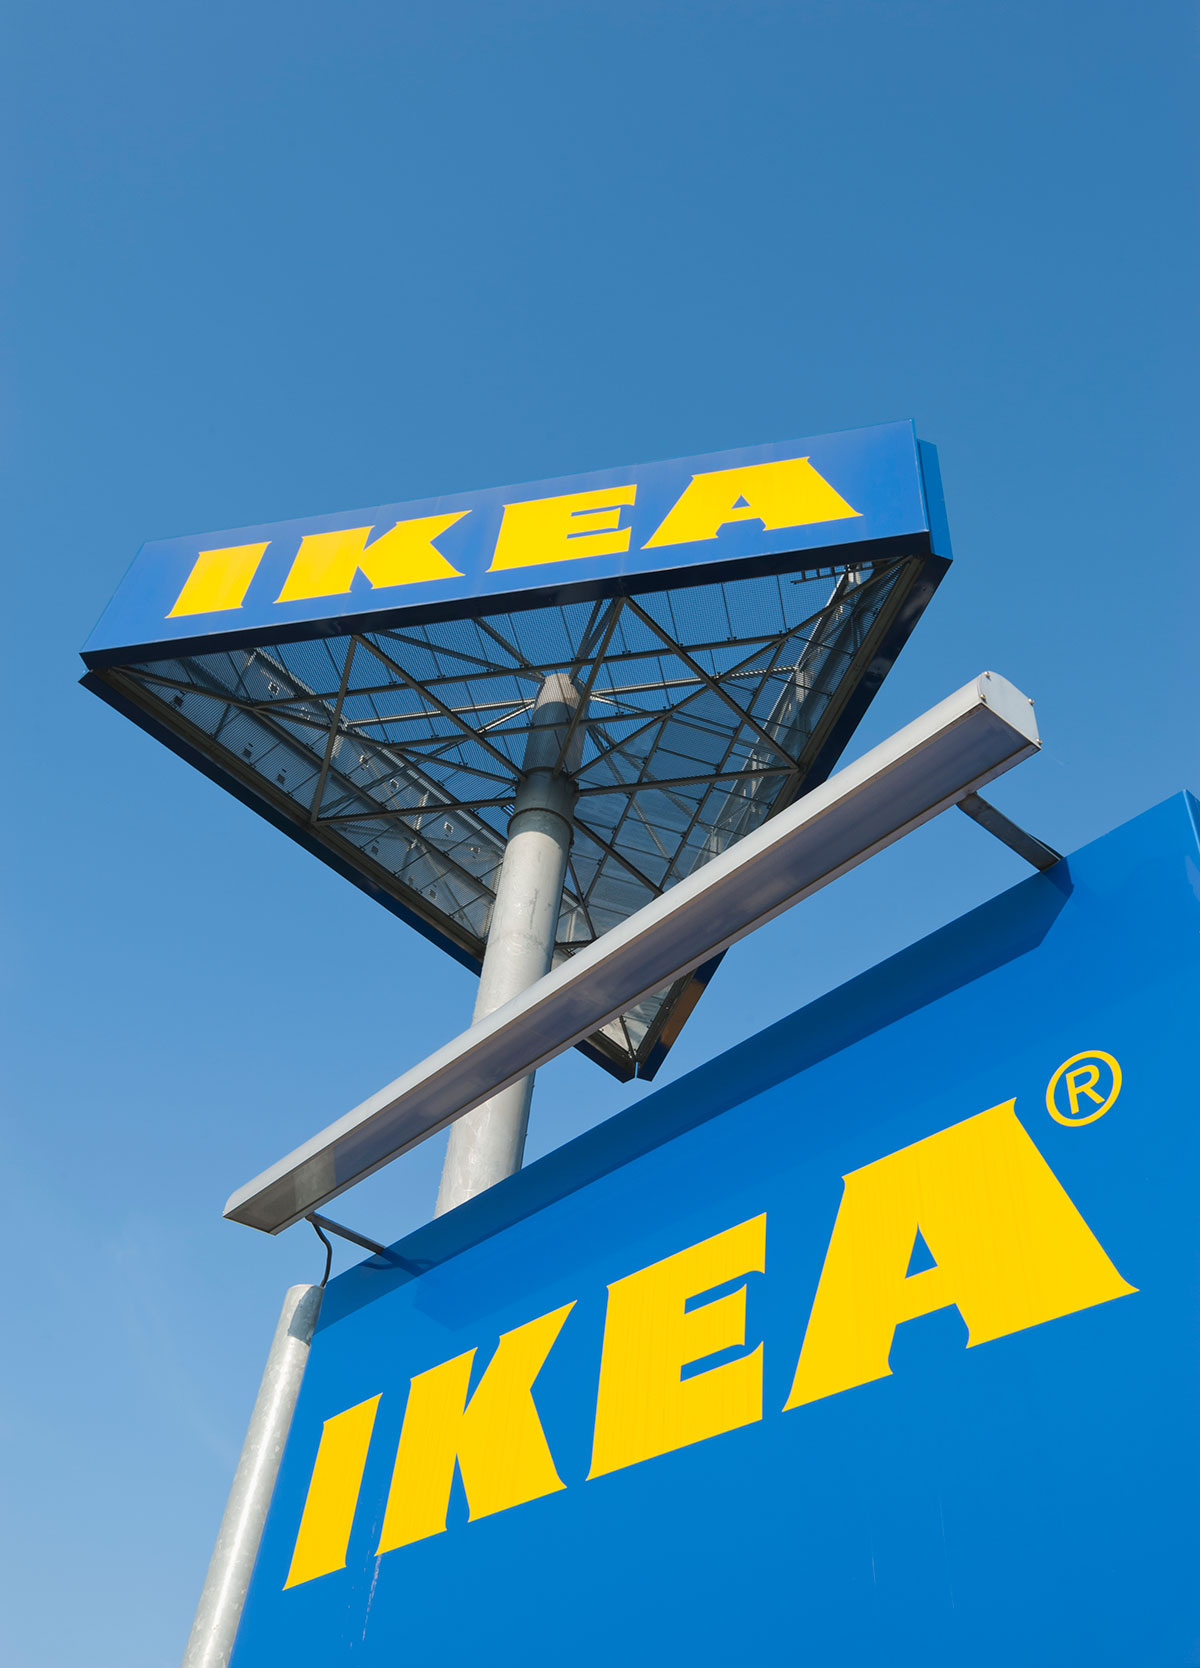 This Is The Correct Way To Pronounce IKEA